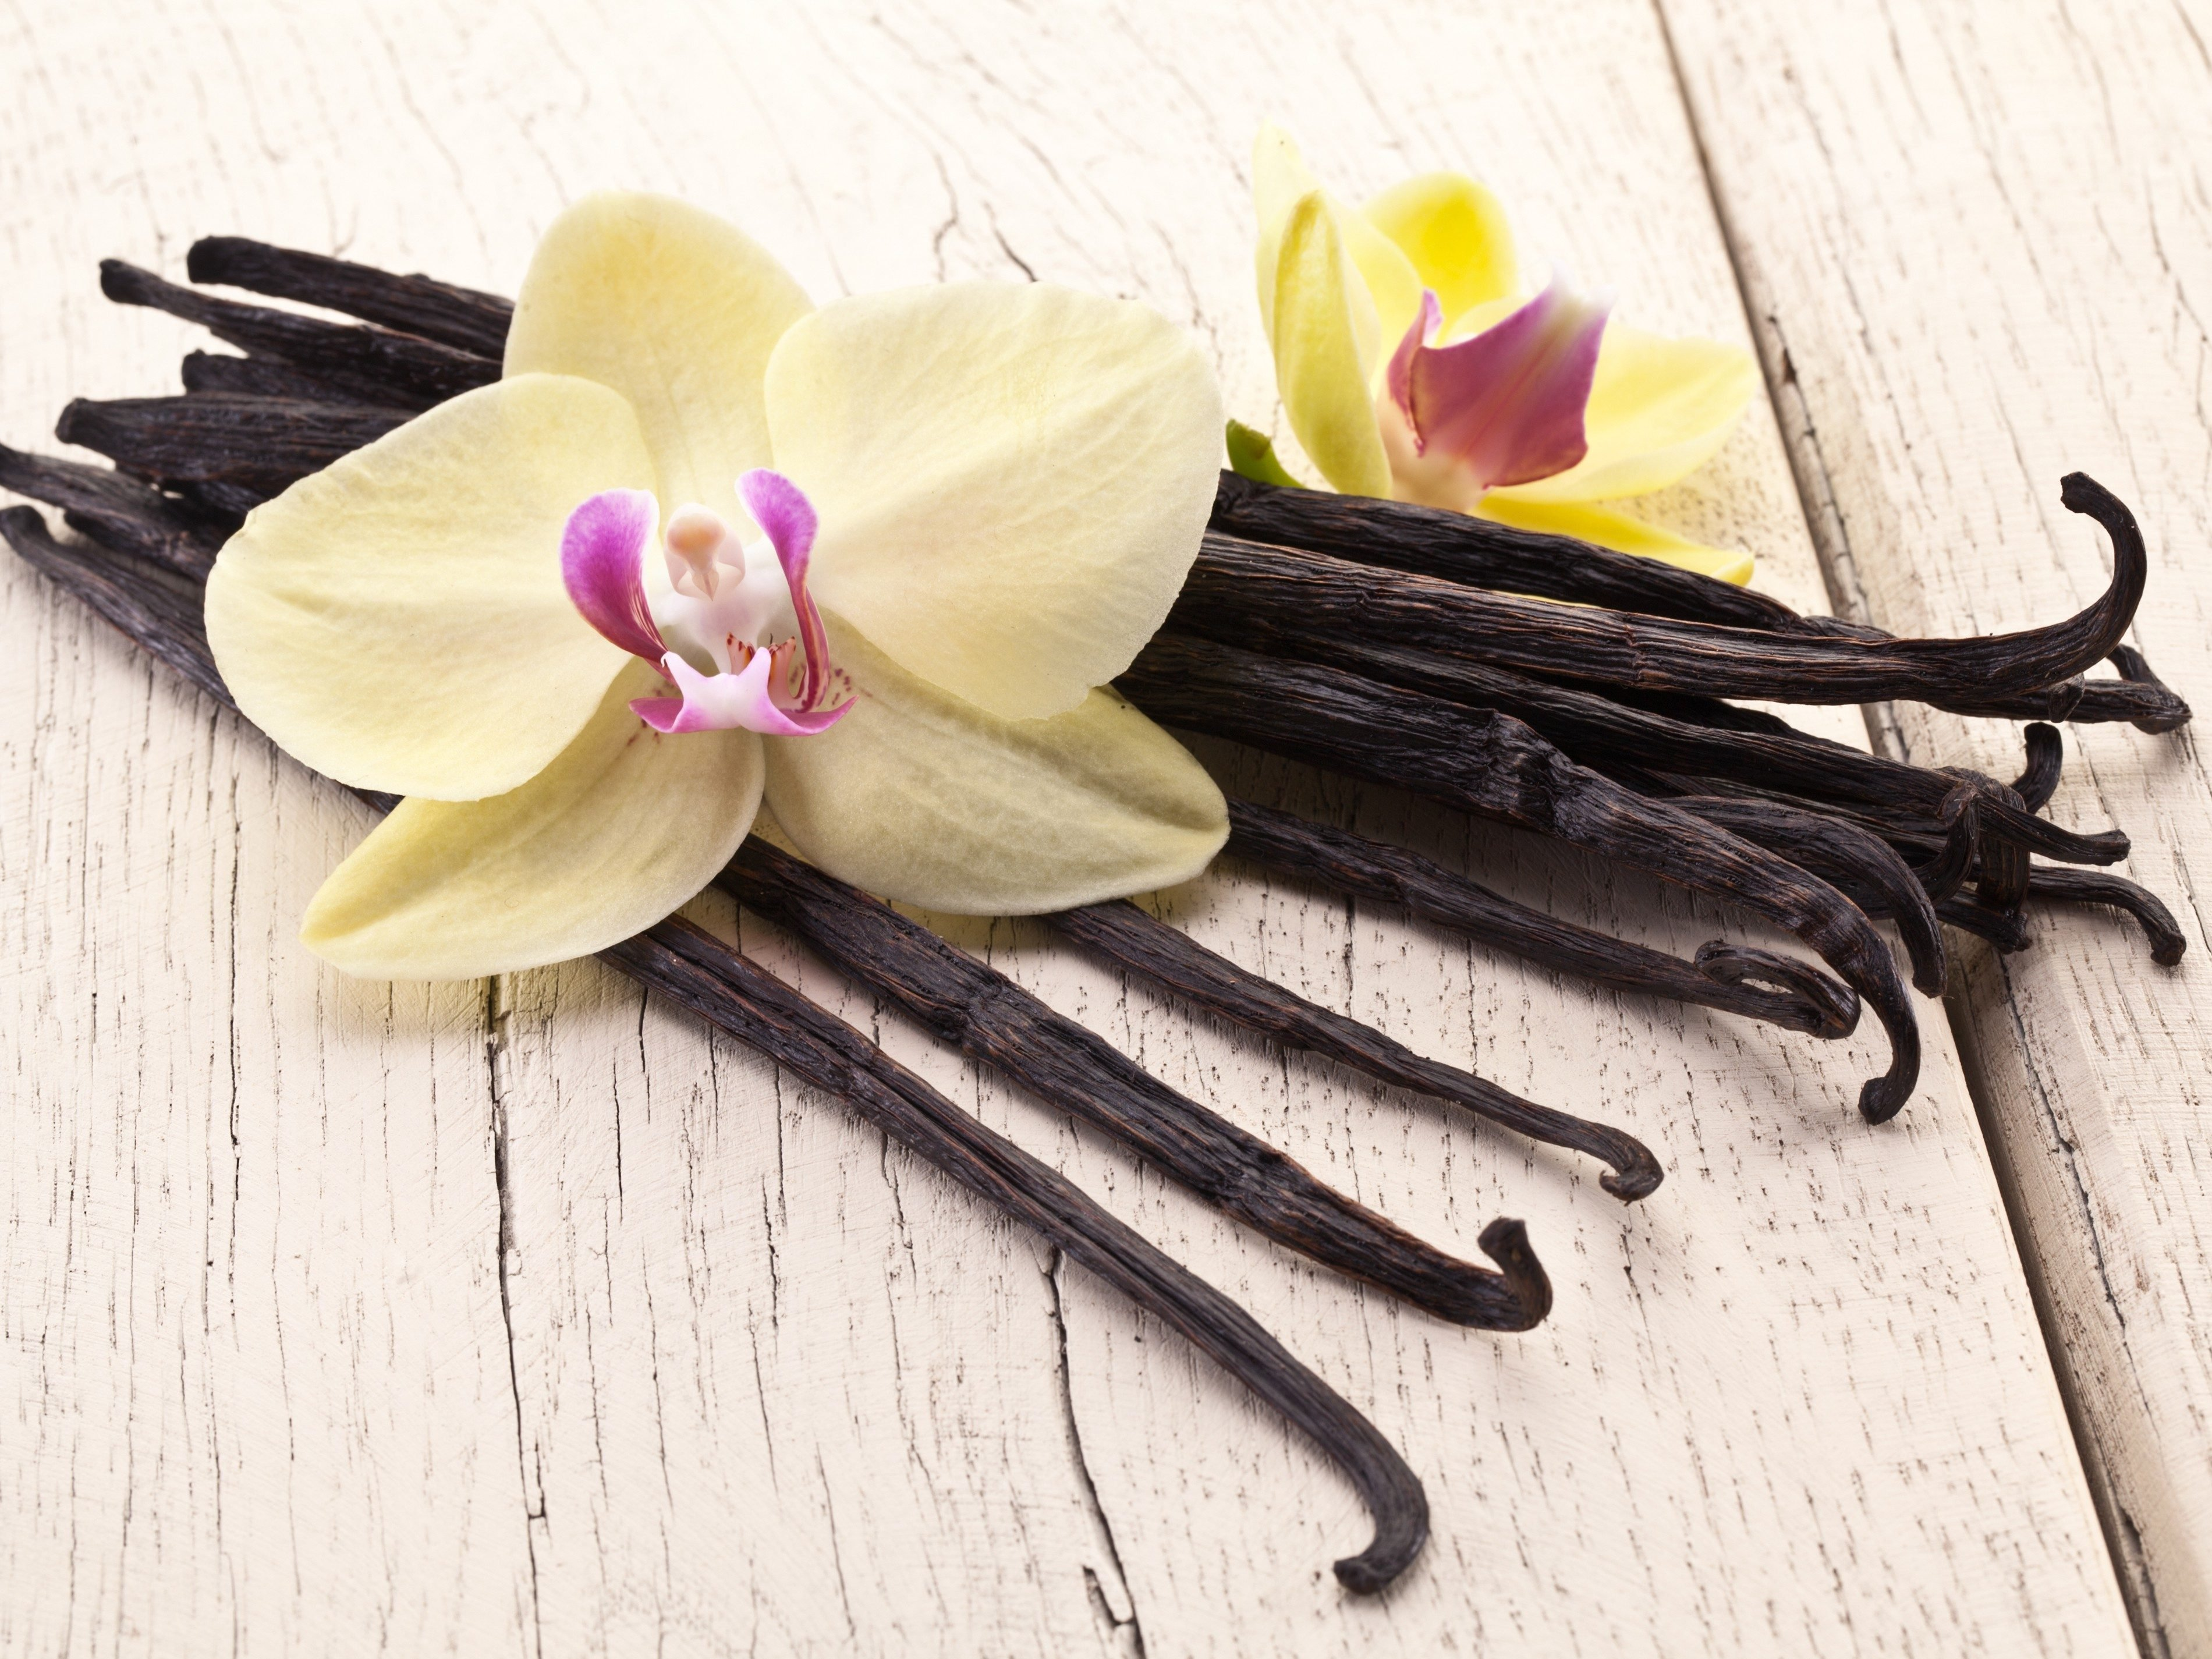 5 New Uses For Vanilla Extract